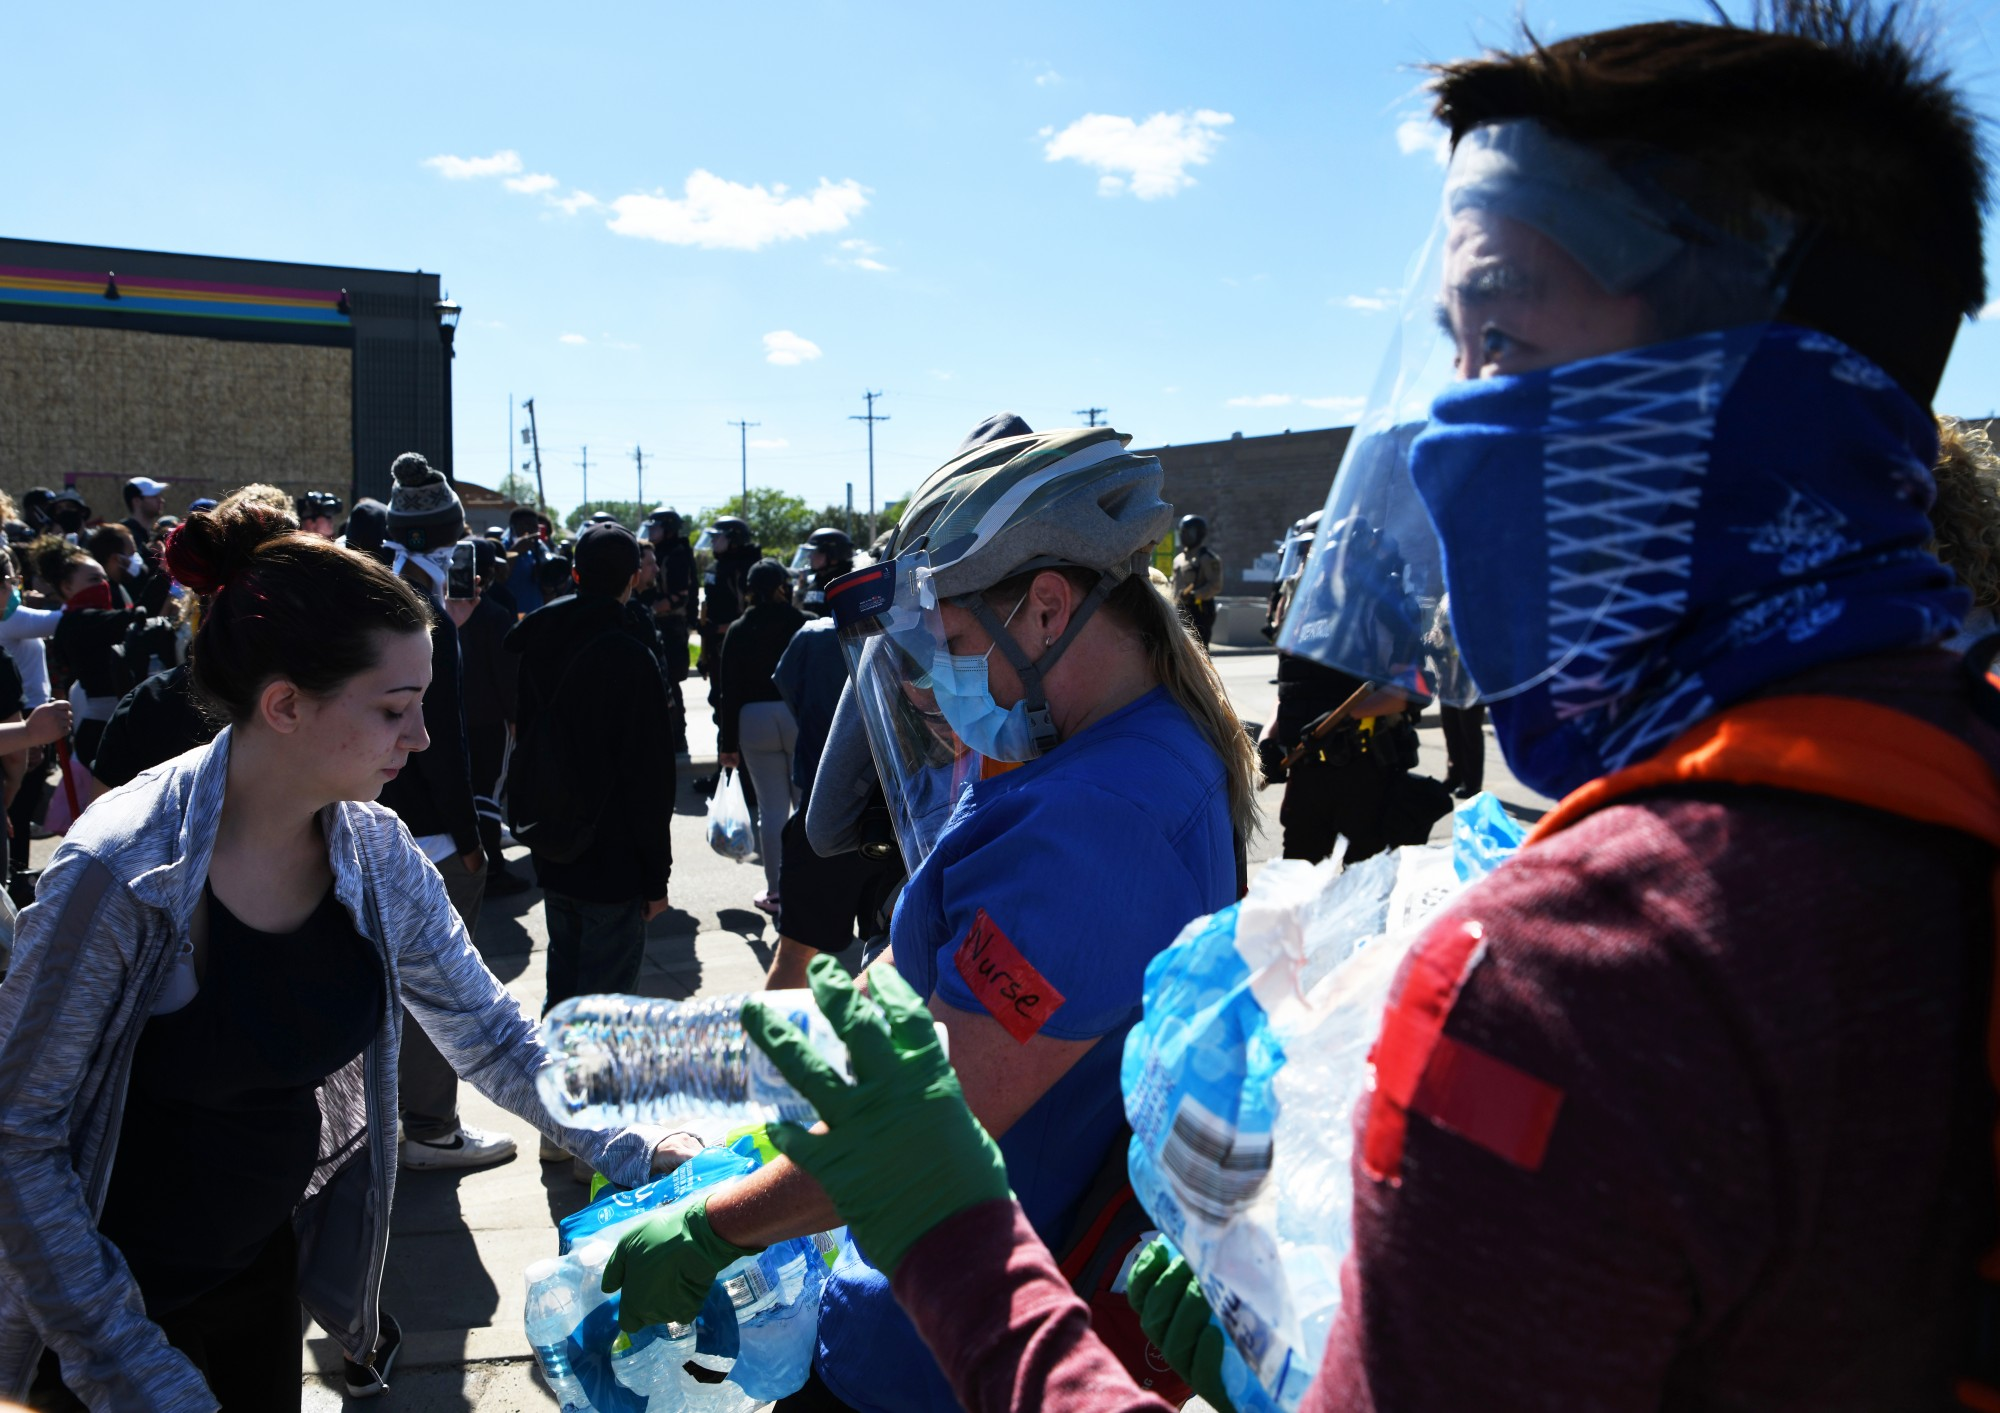 Volunteers hand out water to demonstrators near the Minneapolis 3rd Police Precinct on Friday, May 29.